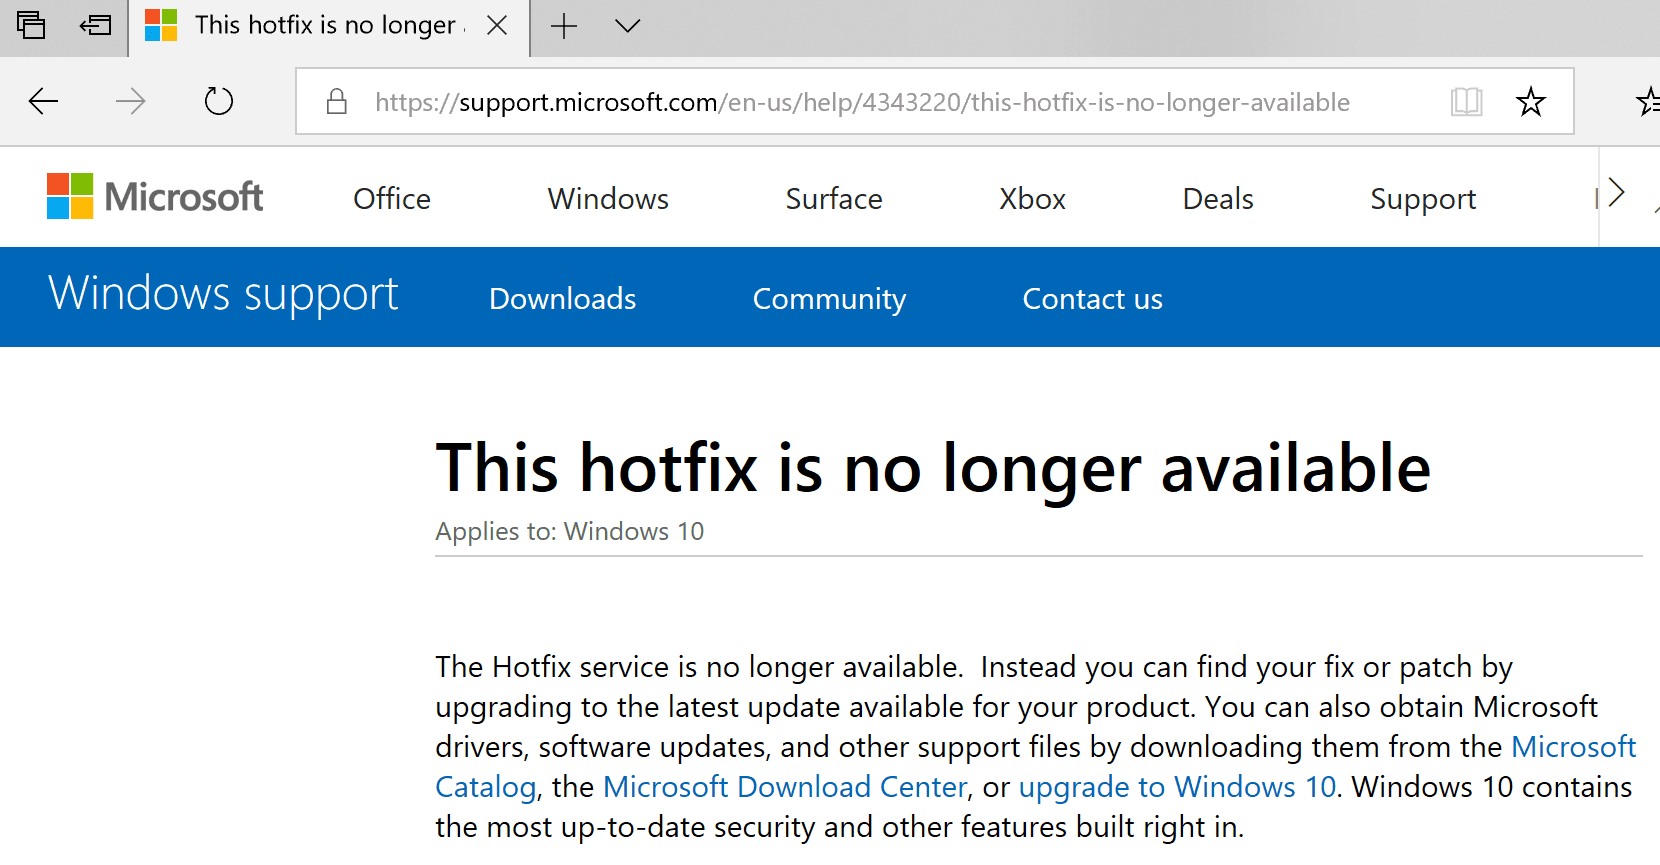 Hotfix is not available